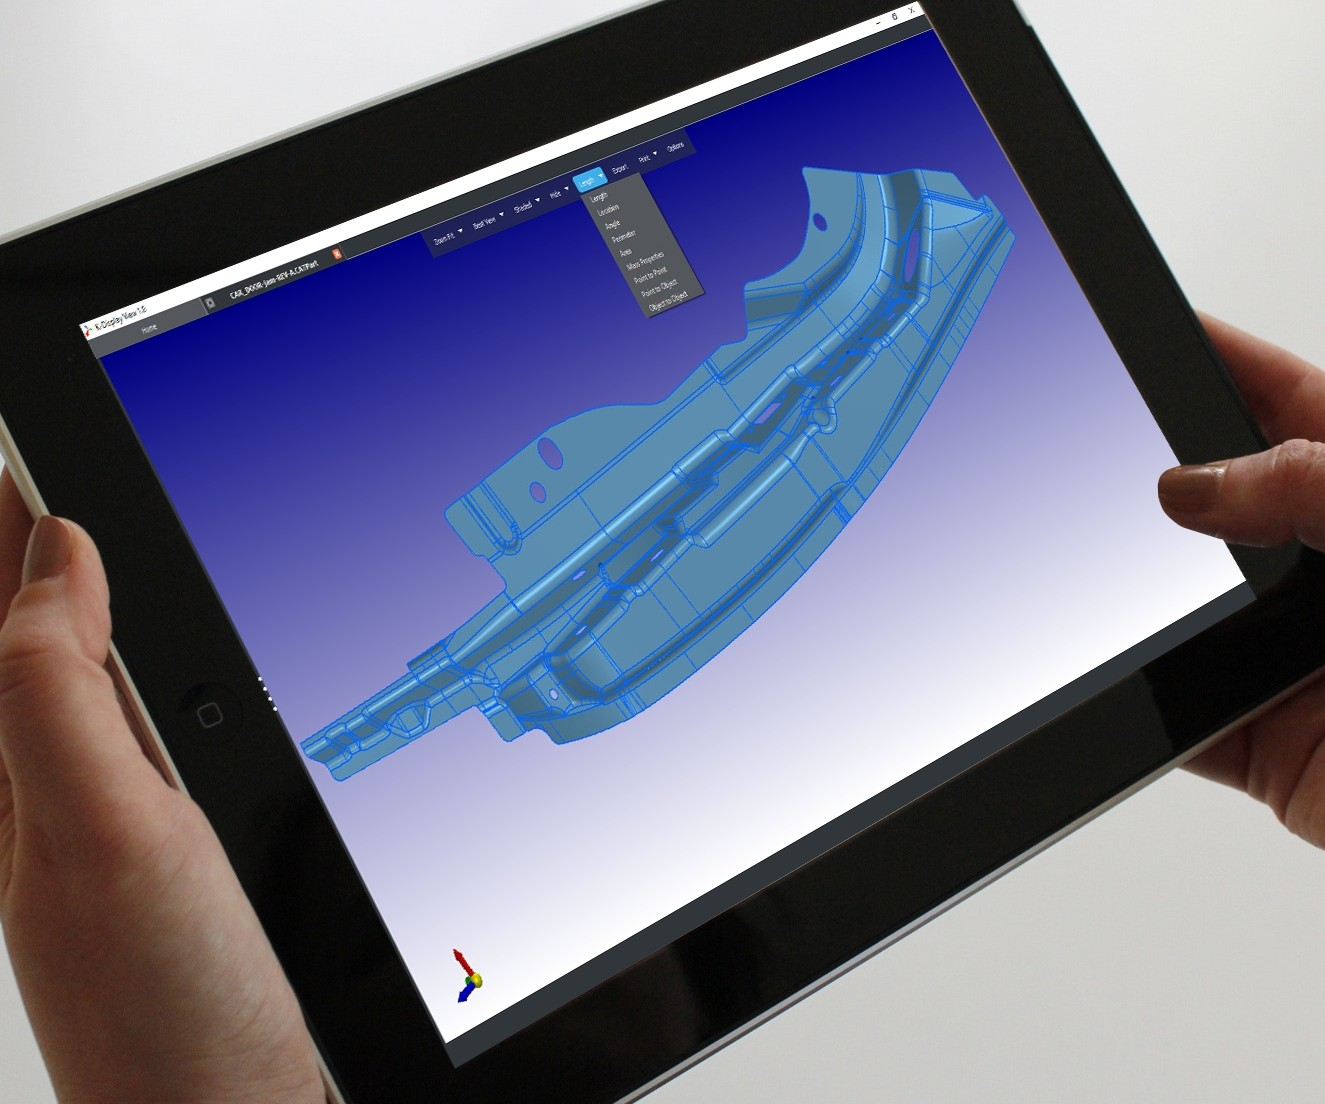 Kubotek3D will display its K-Display View applications at IMTS 2018.